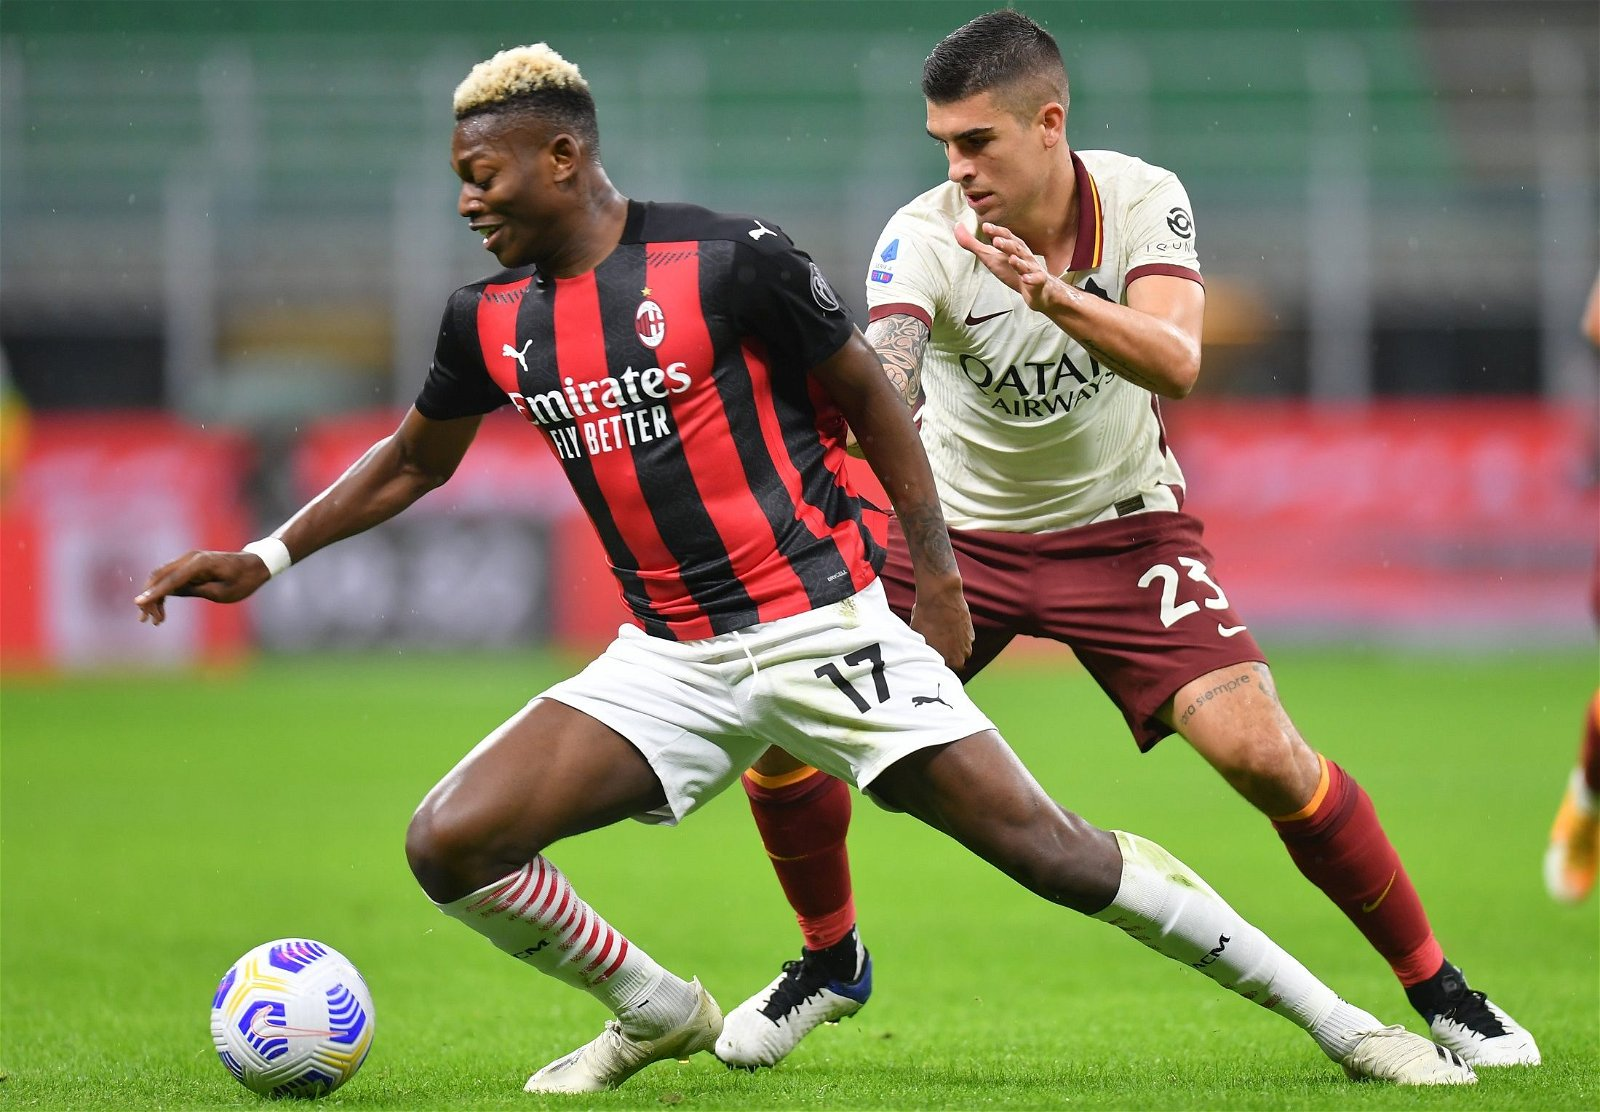 ac milan star rafael leao vs roma serie a e1604489508564 - Wolves must rue not signing dream Jimenez partner in £36m-rated gem likened to Mbappe - opinion